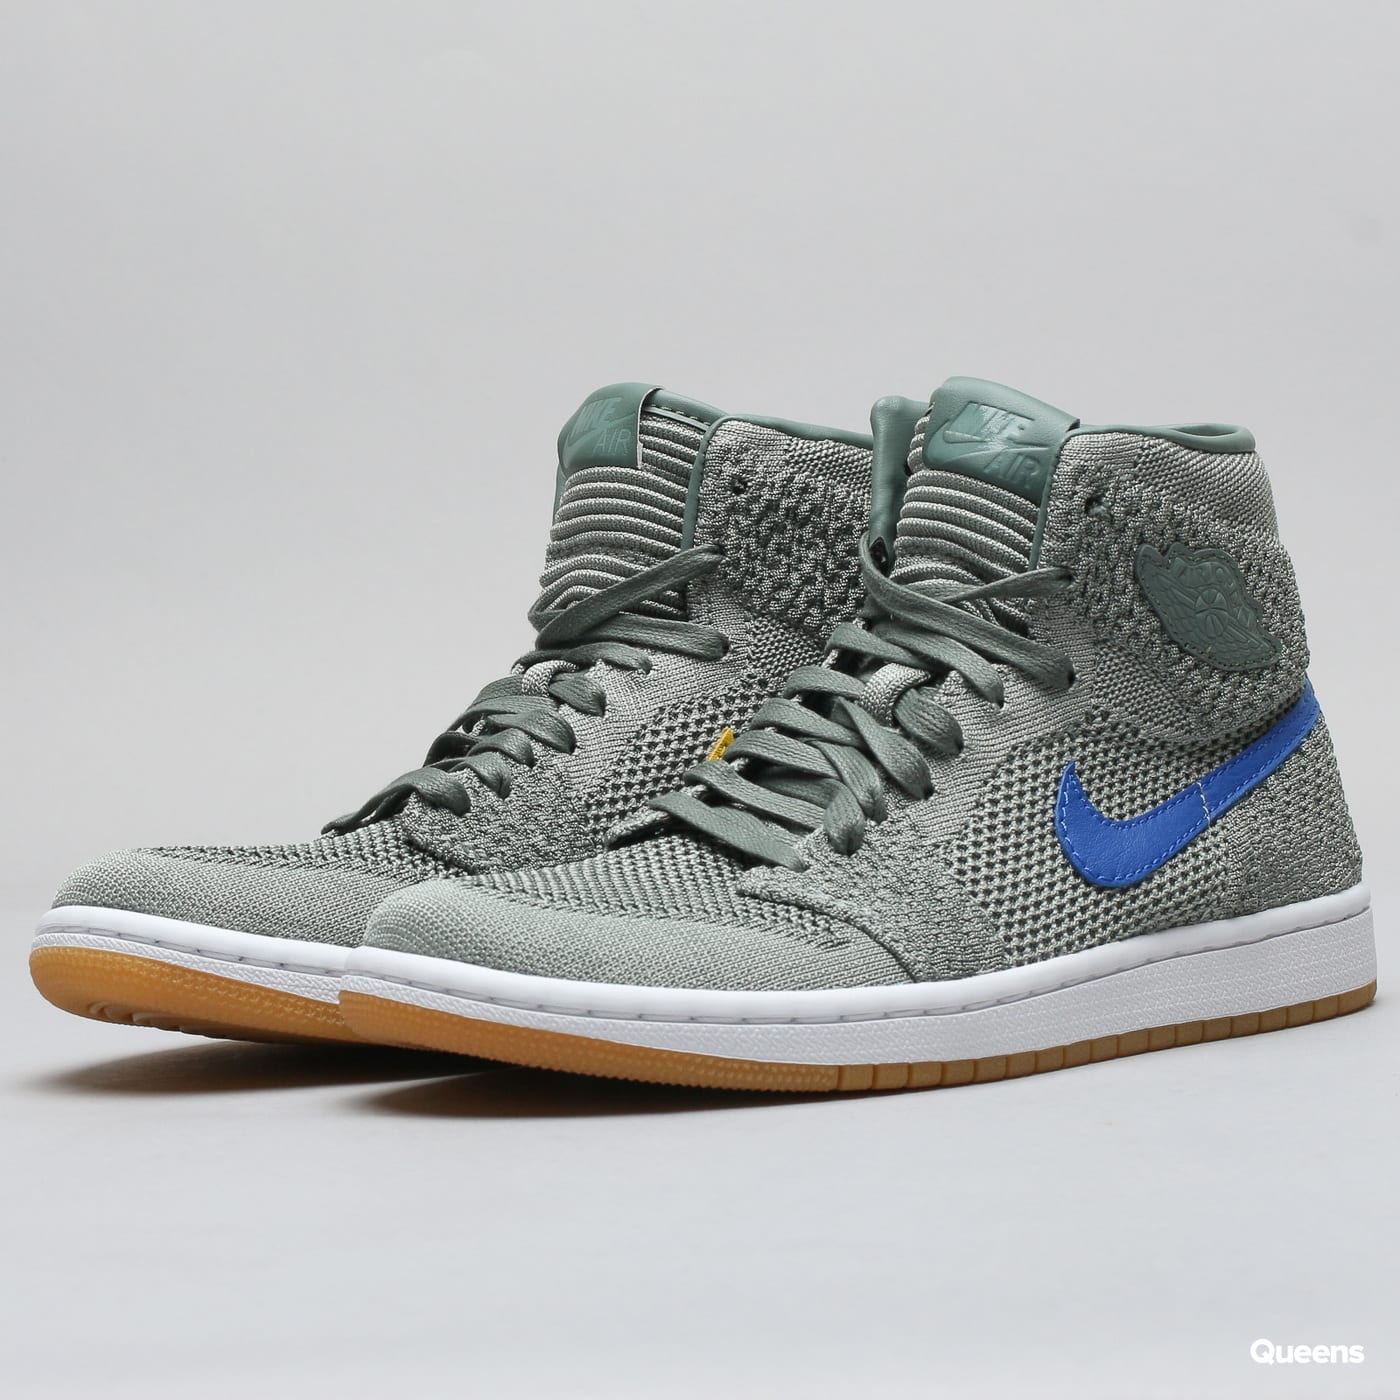 quality design a79a7 a736b Jordan Air Jordan 1 Retro HI Flyknit BG (919702-333)– Queens 💚